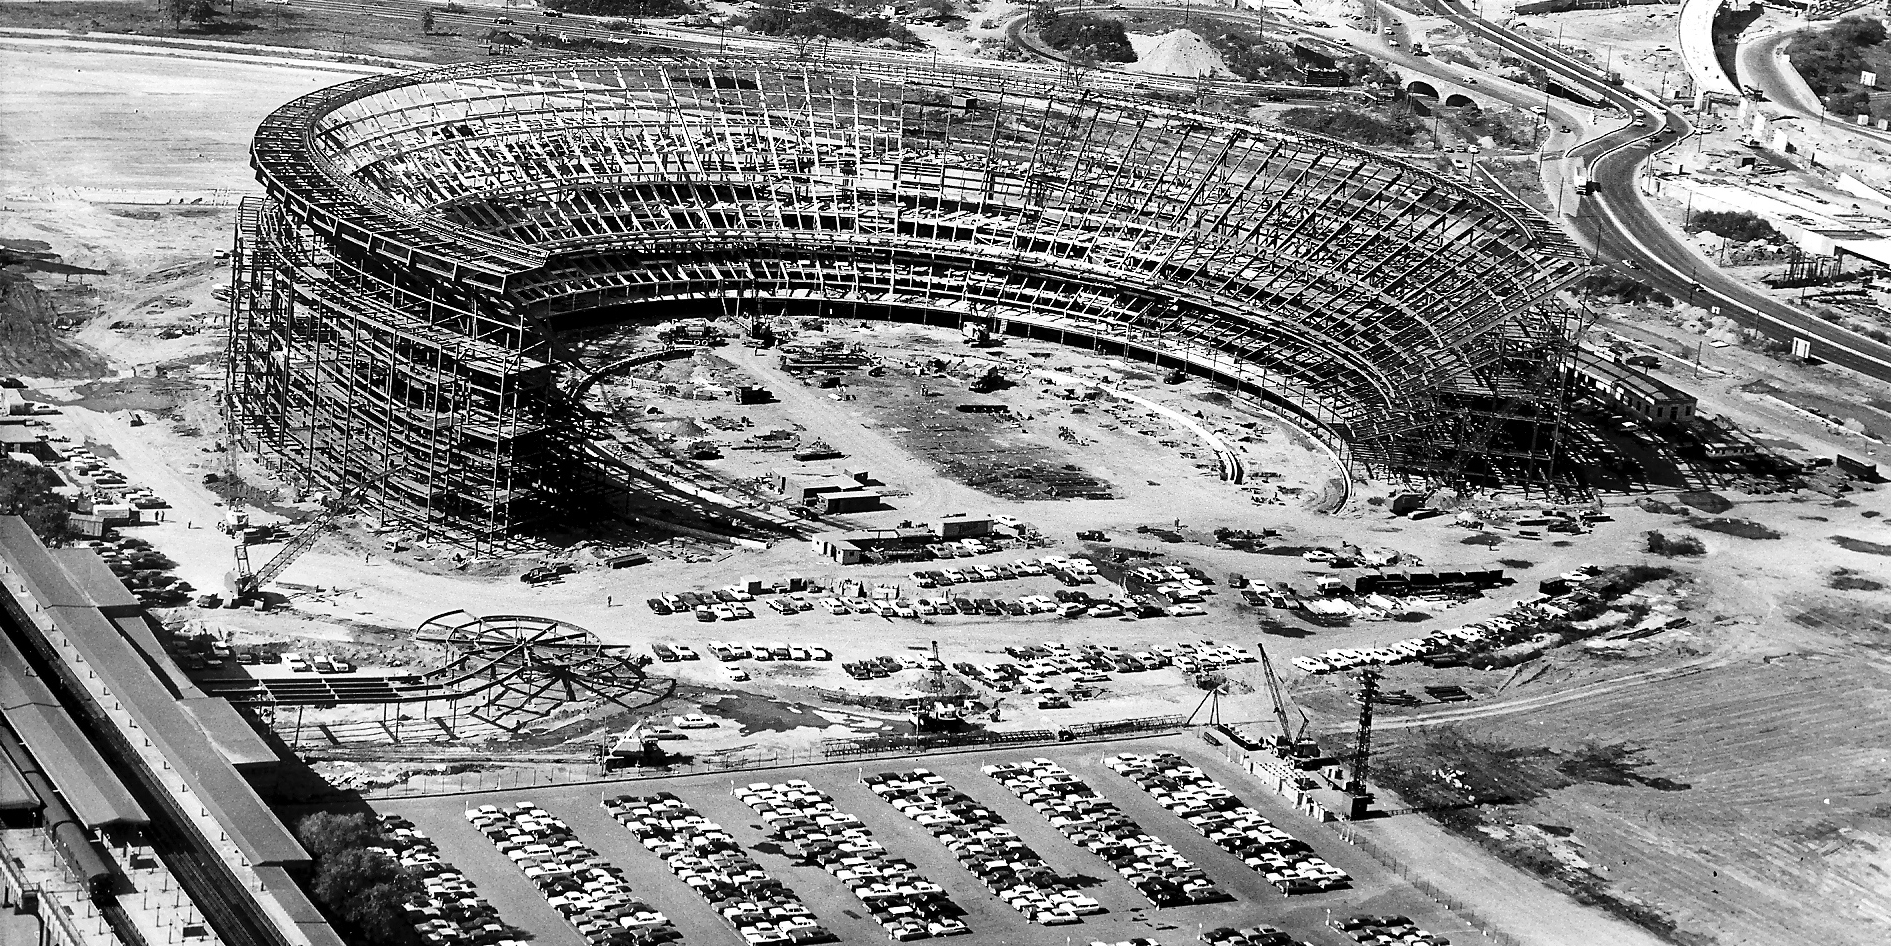 Construction of Shea Stadium from the 1960s